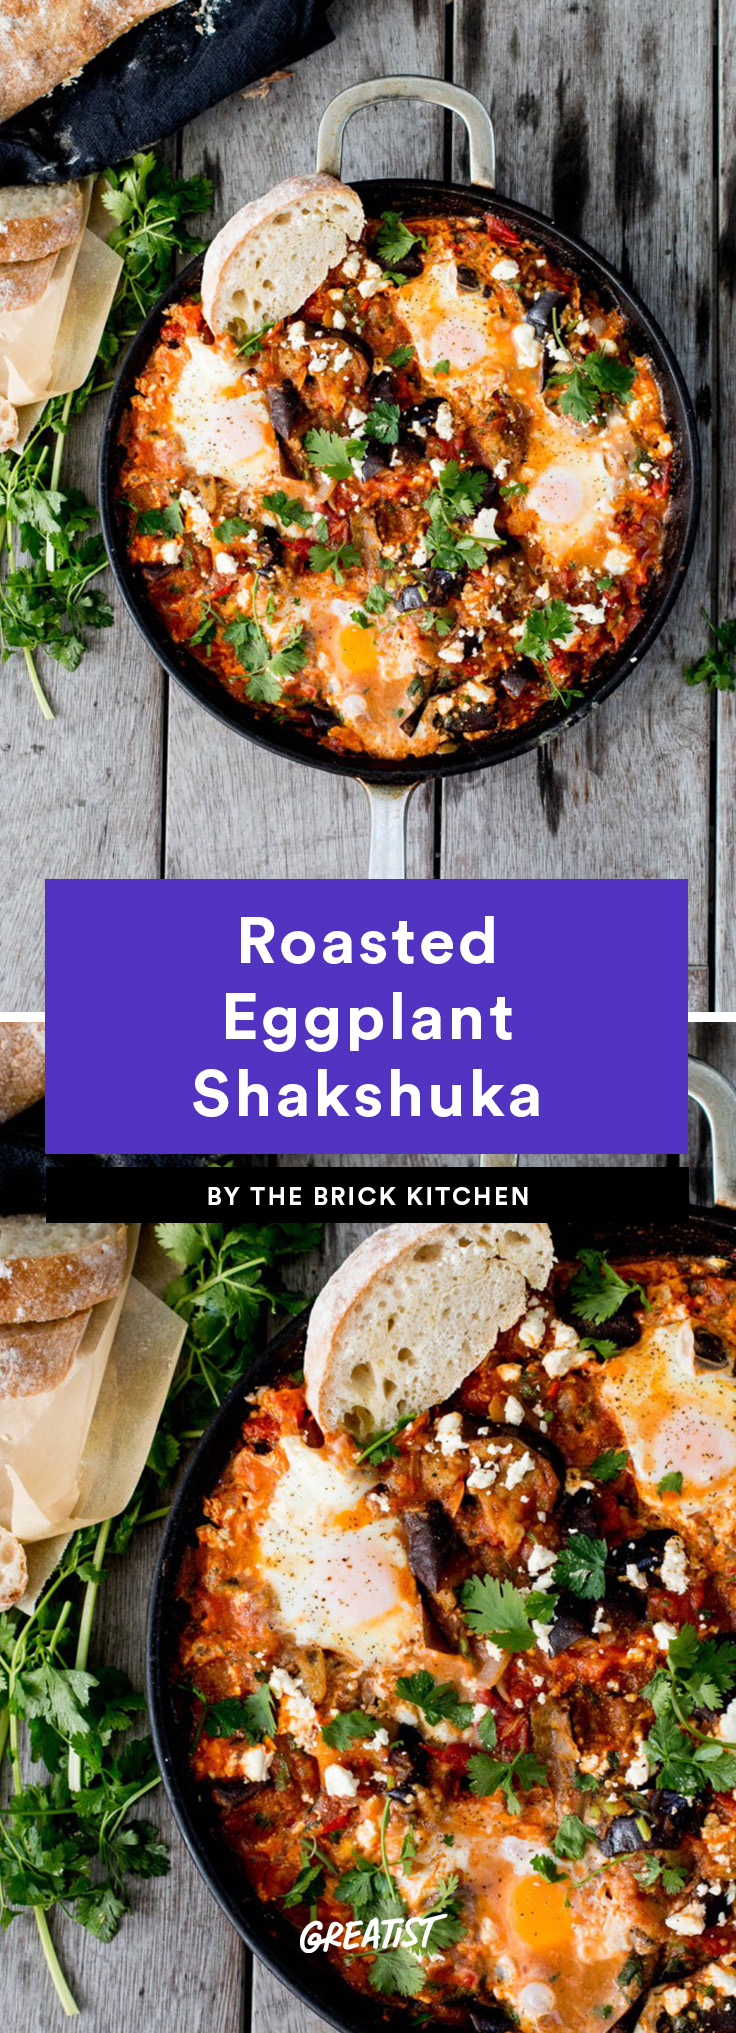 Shakshuka Recipes That Will Impress Your Guests